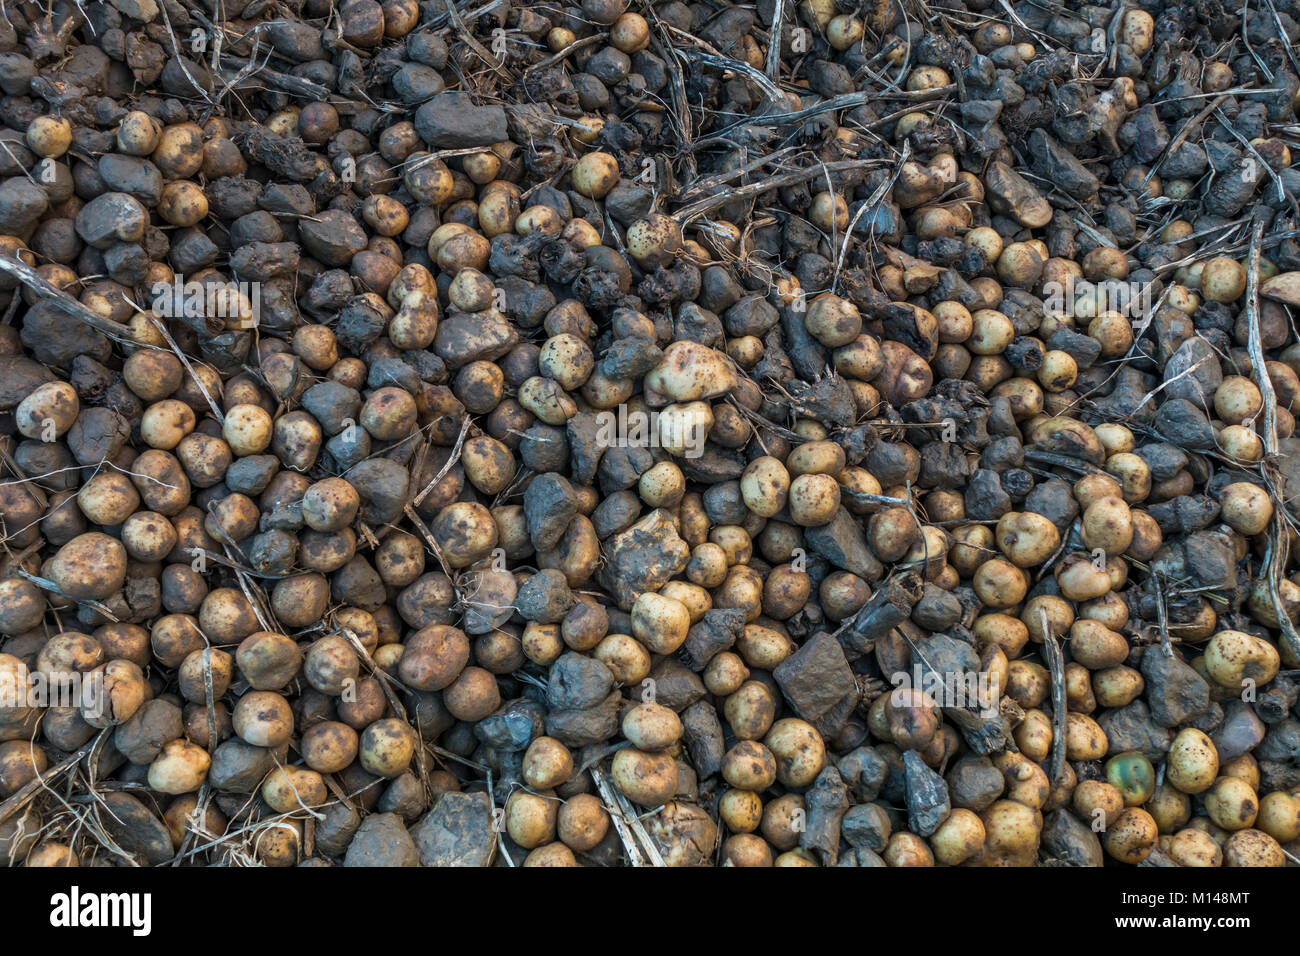 Mix of potatoes and stones left behind by farmer  on field. Netherlands - Stock Image